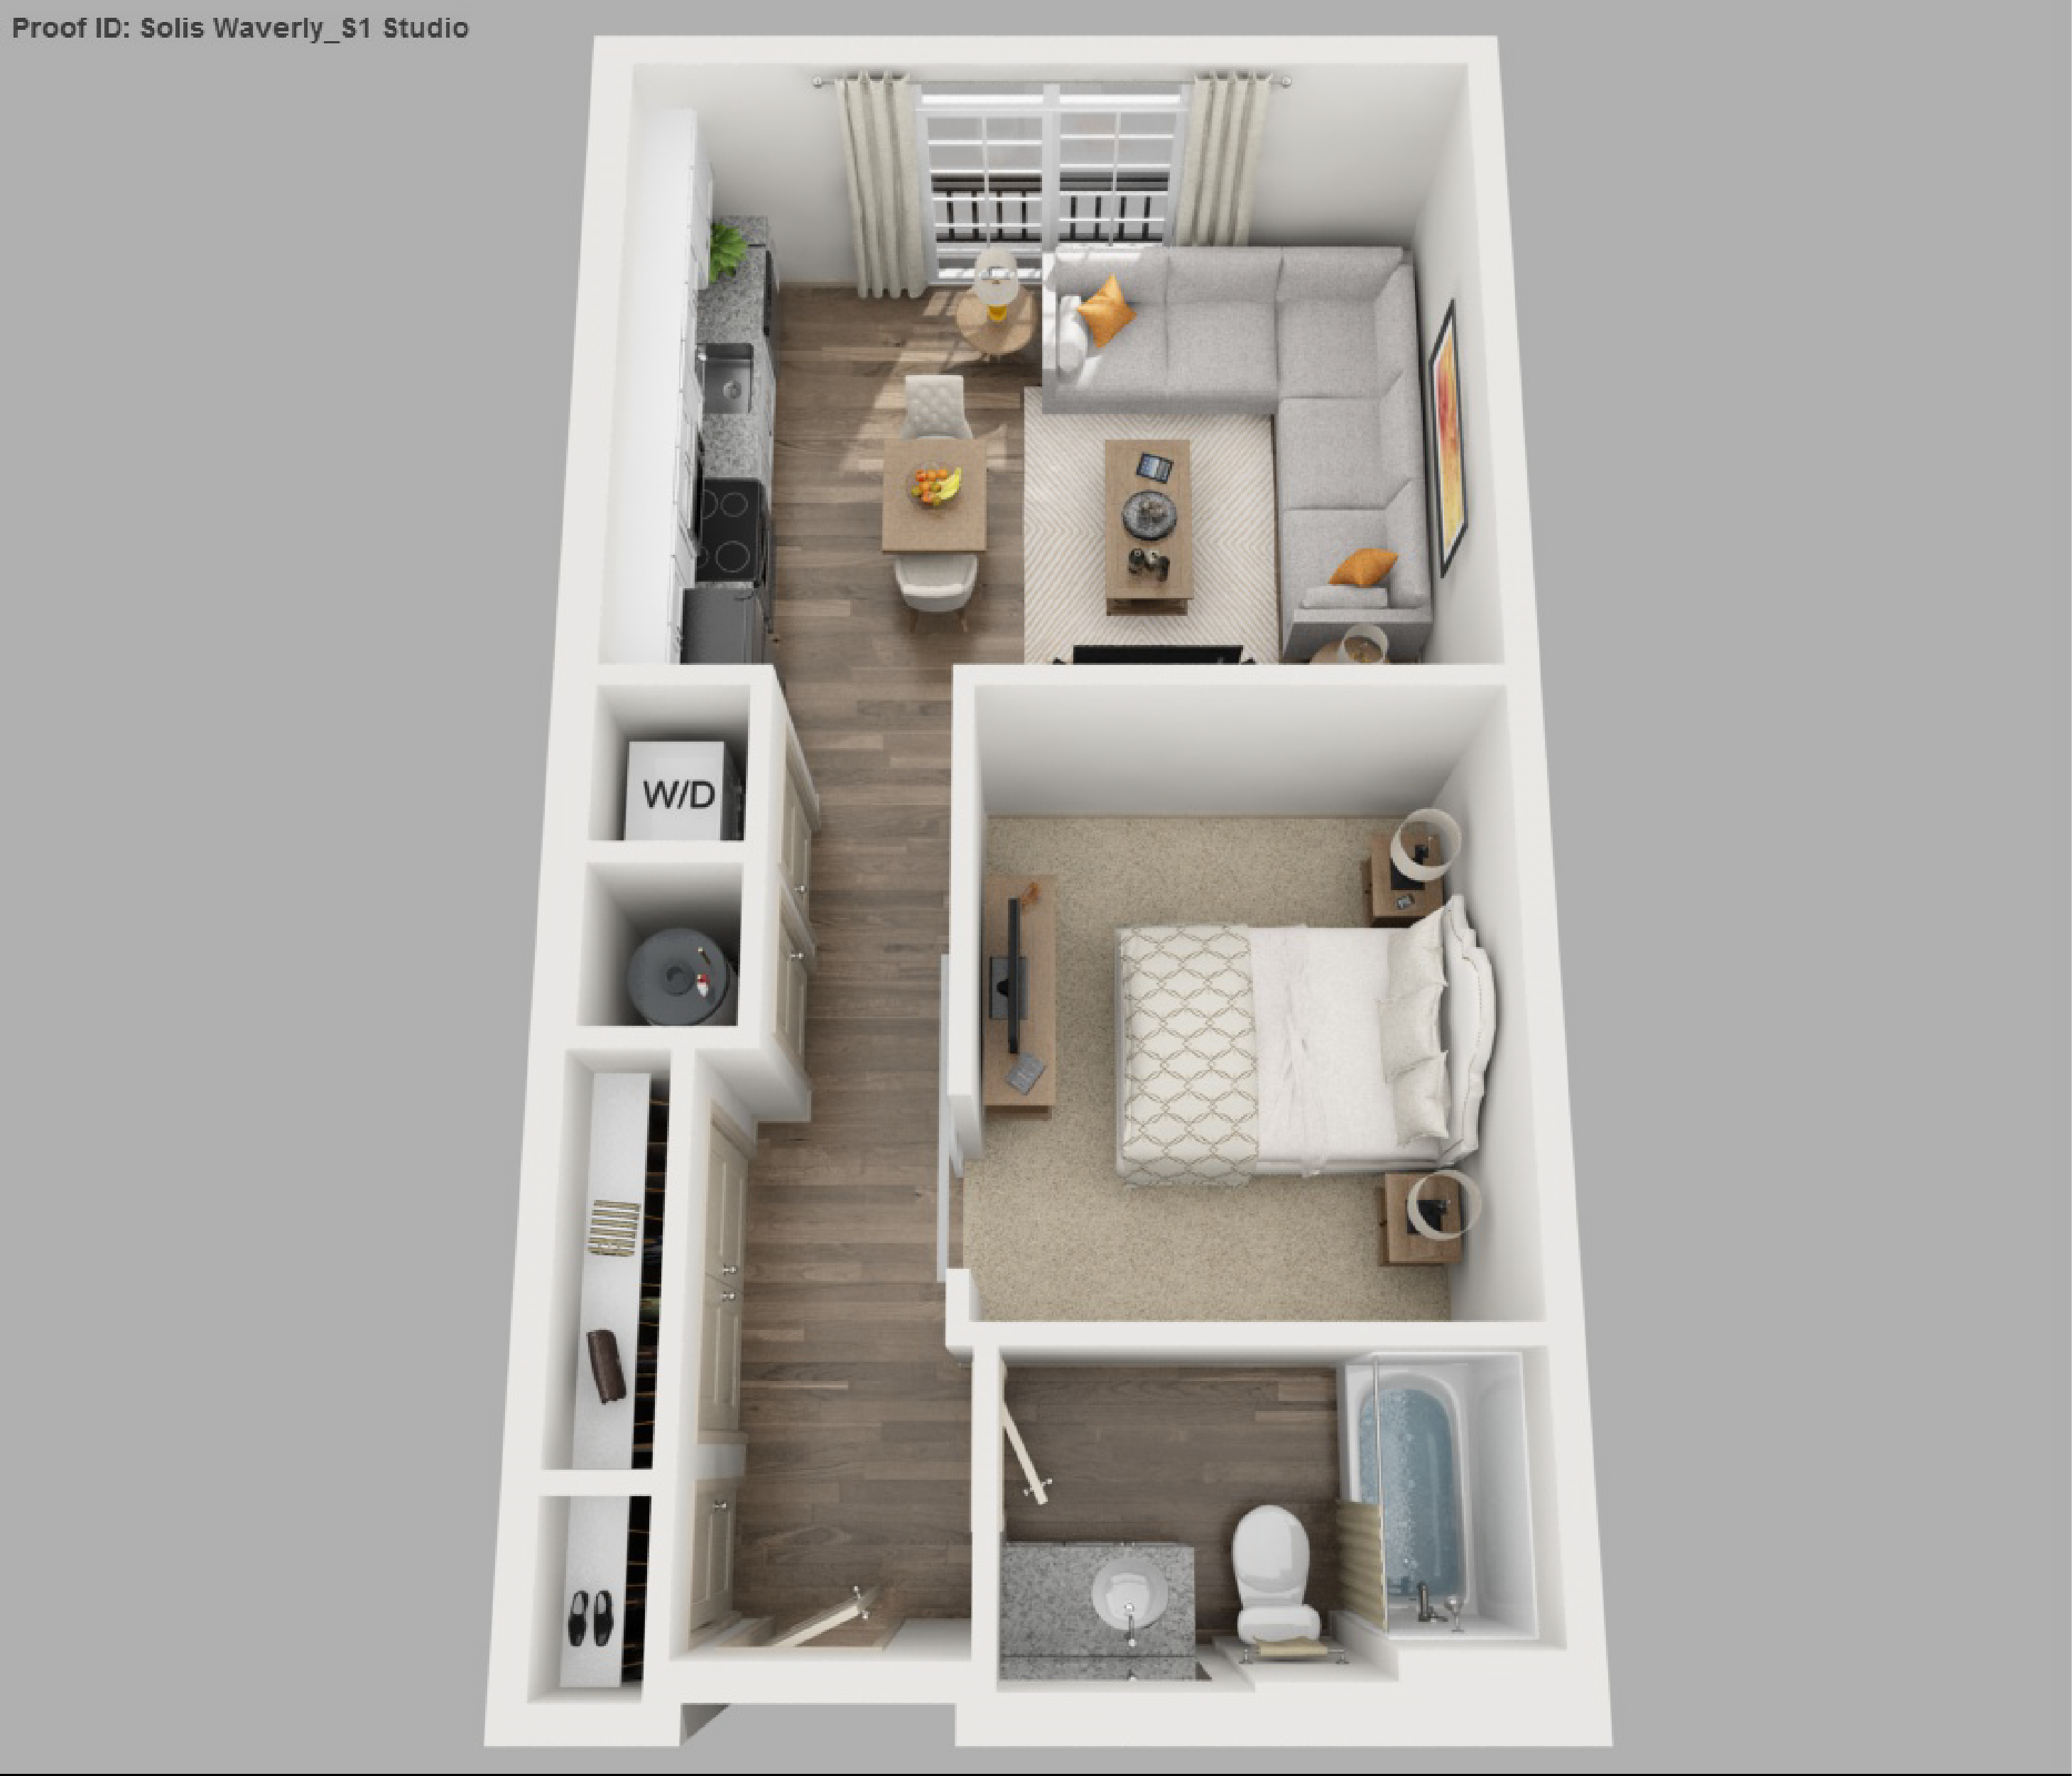 Studio Apartments Floor Plans solis apartments floorplans - waverly